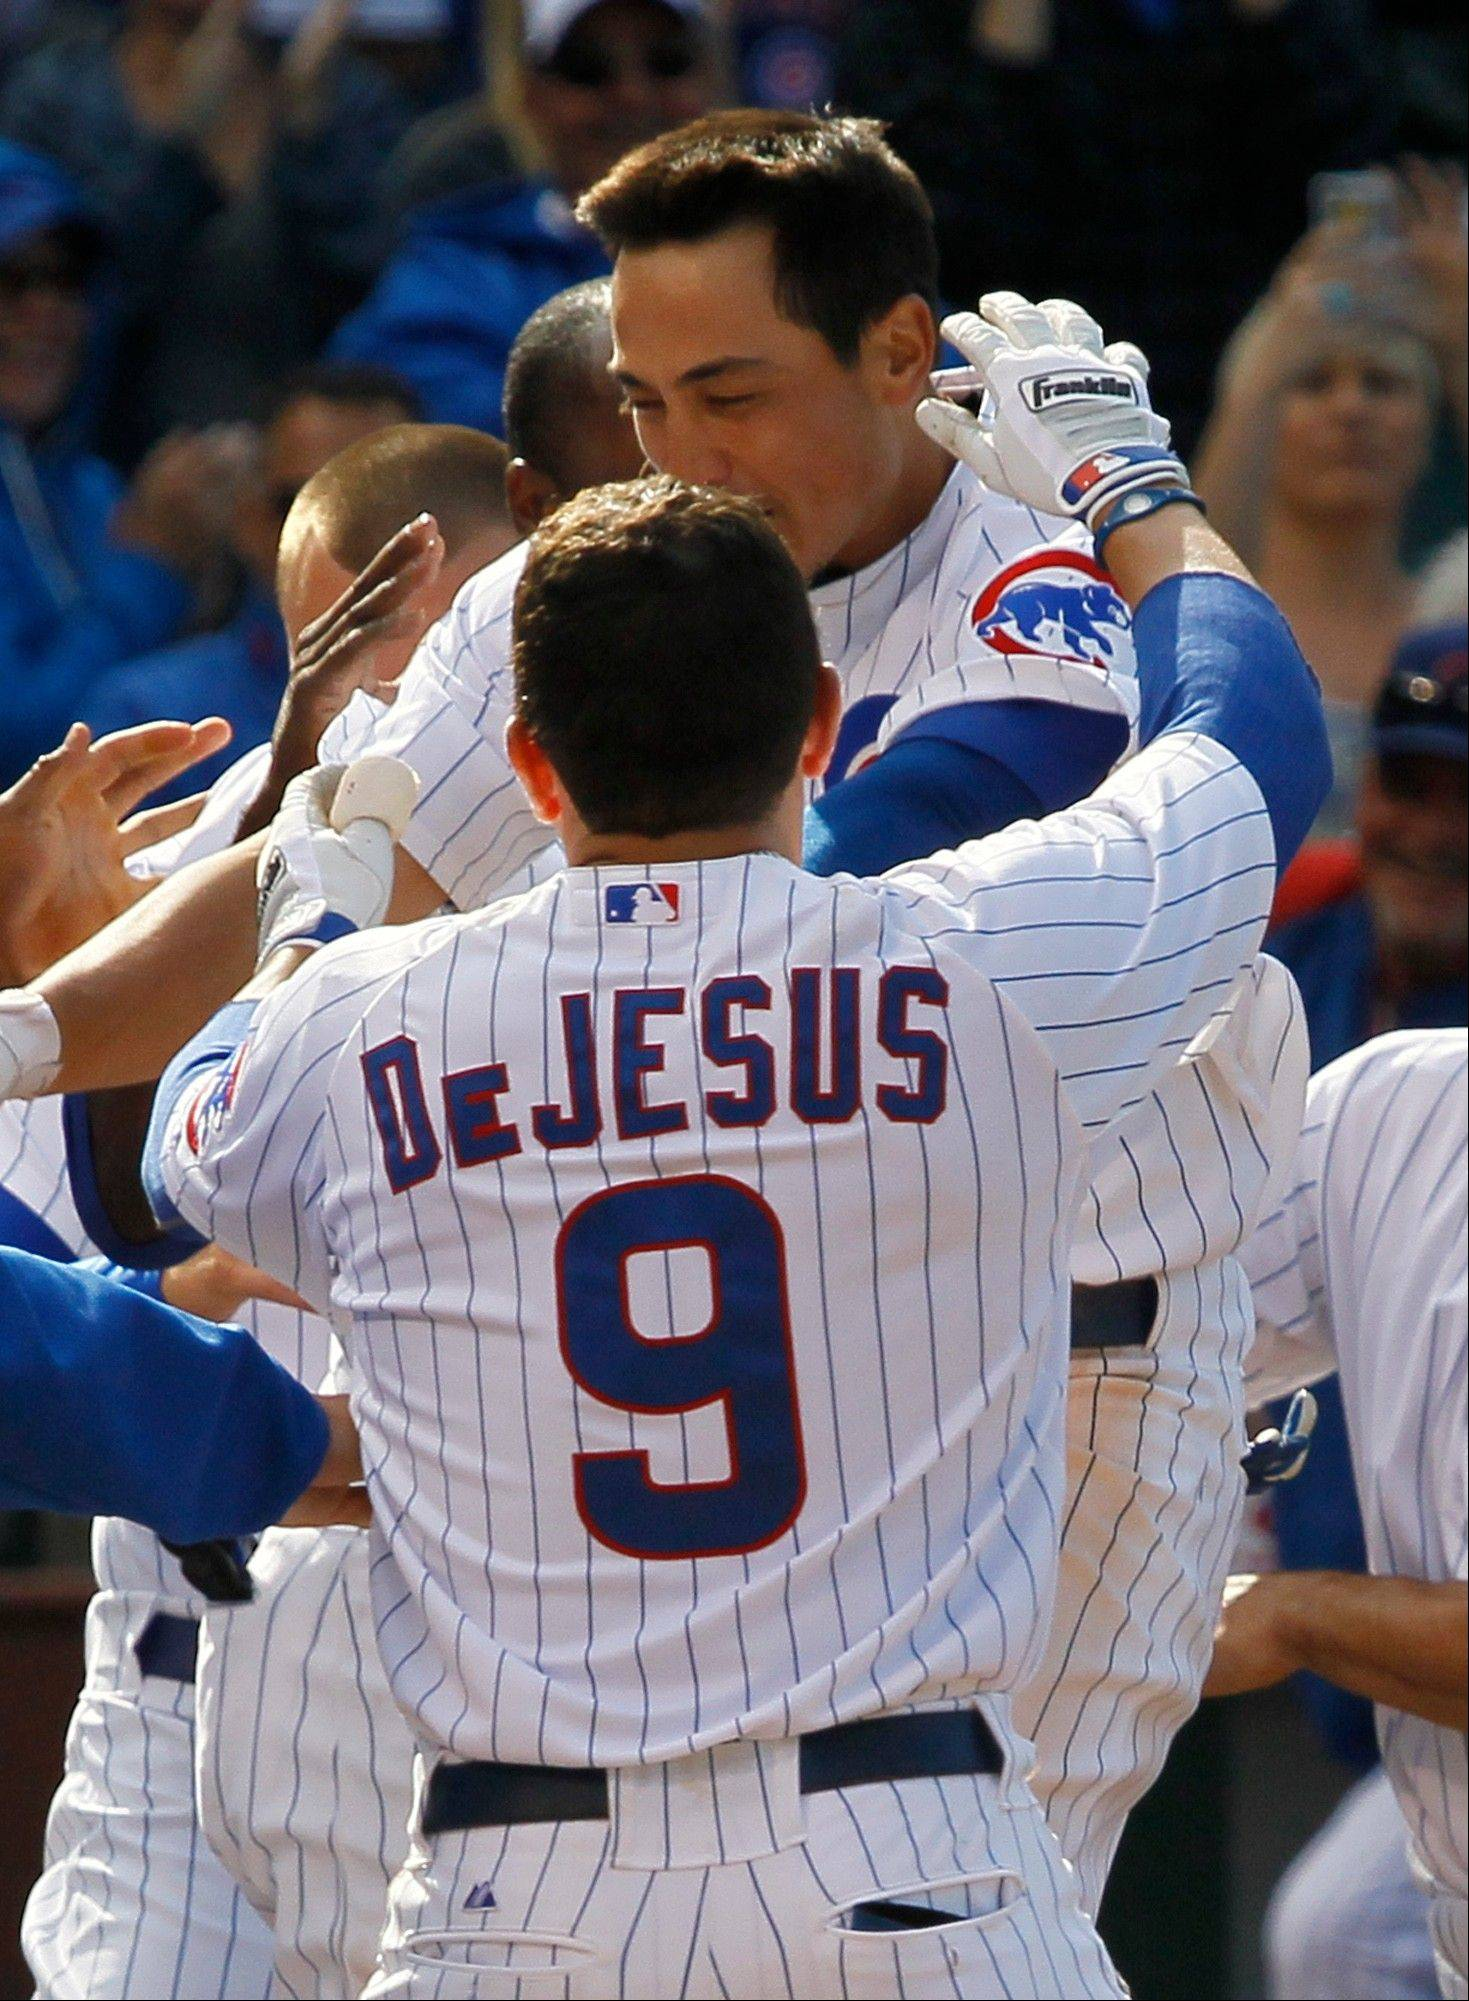 The Cubs' Darwin Barney, right, celebrates with teammates after hitting the game-winning, 2-run homer in the ninth inning Wednesday at Wrigley Field.